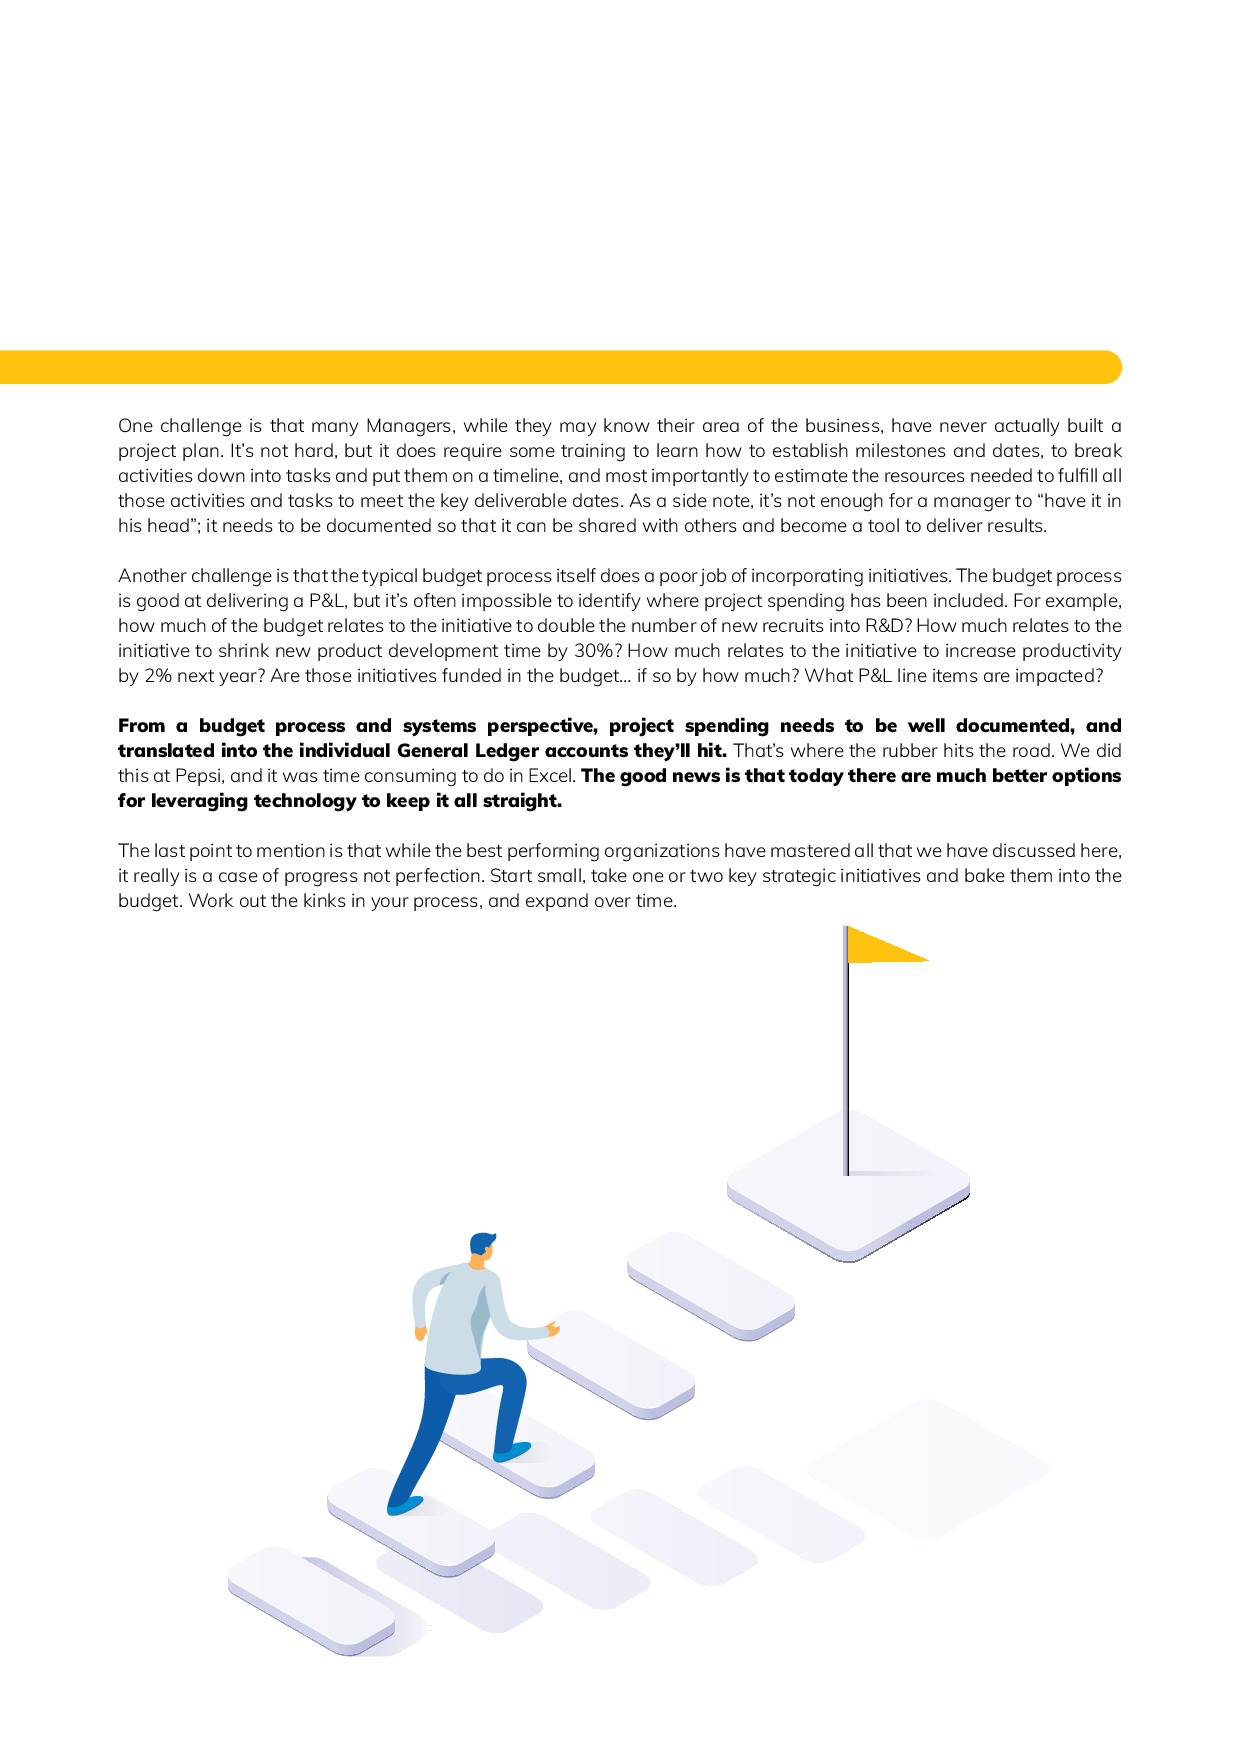 12 Best Practices in FP&A | Page 7